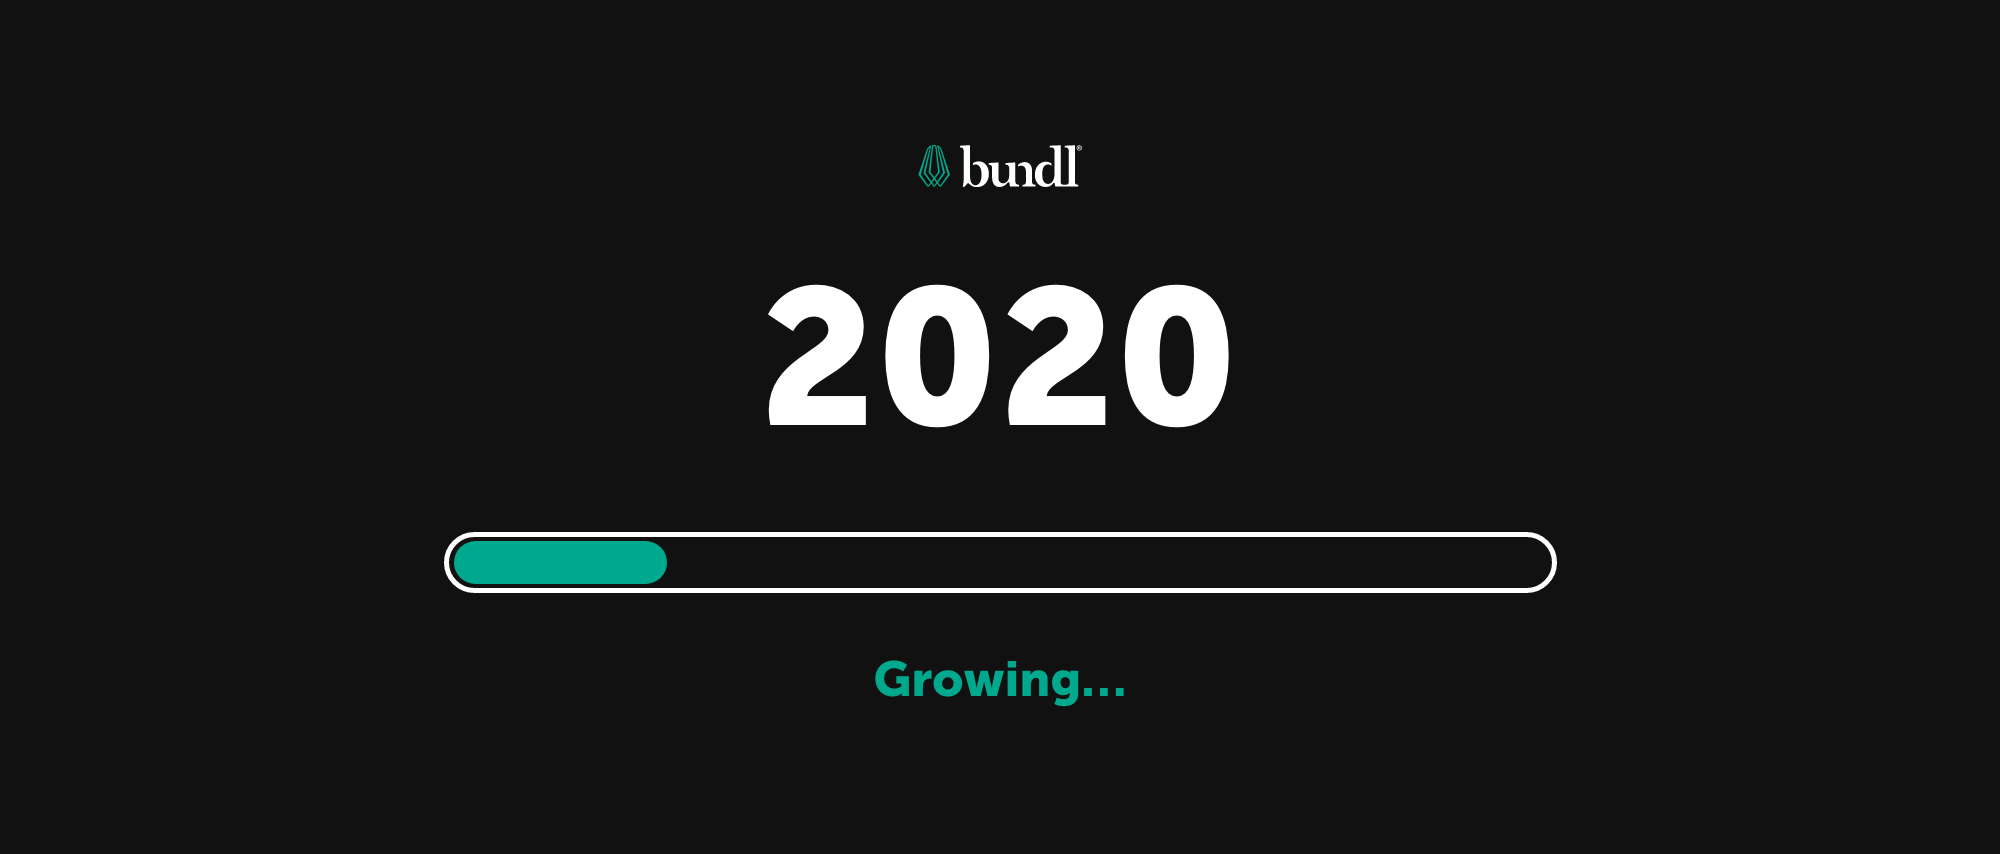 Accelerating Growth in 2020 With Our Own Unique Brand of Skills and Capabilities